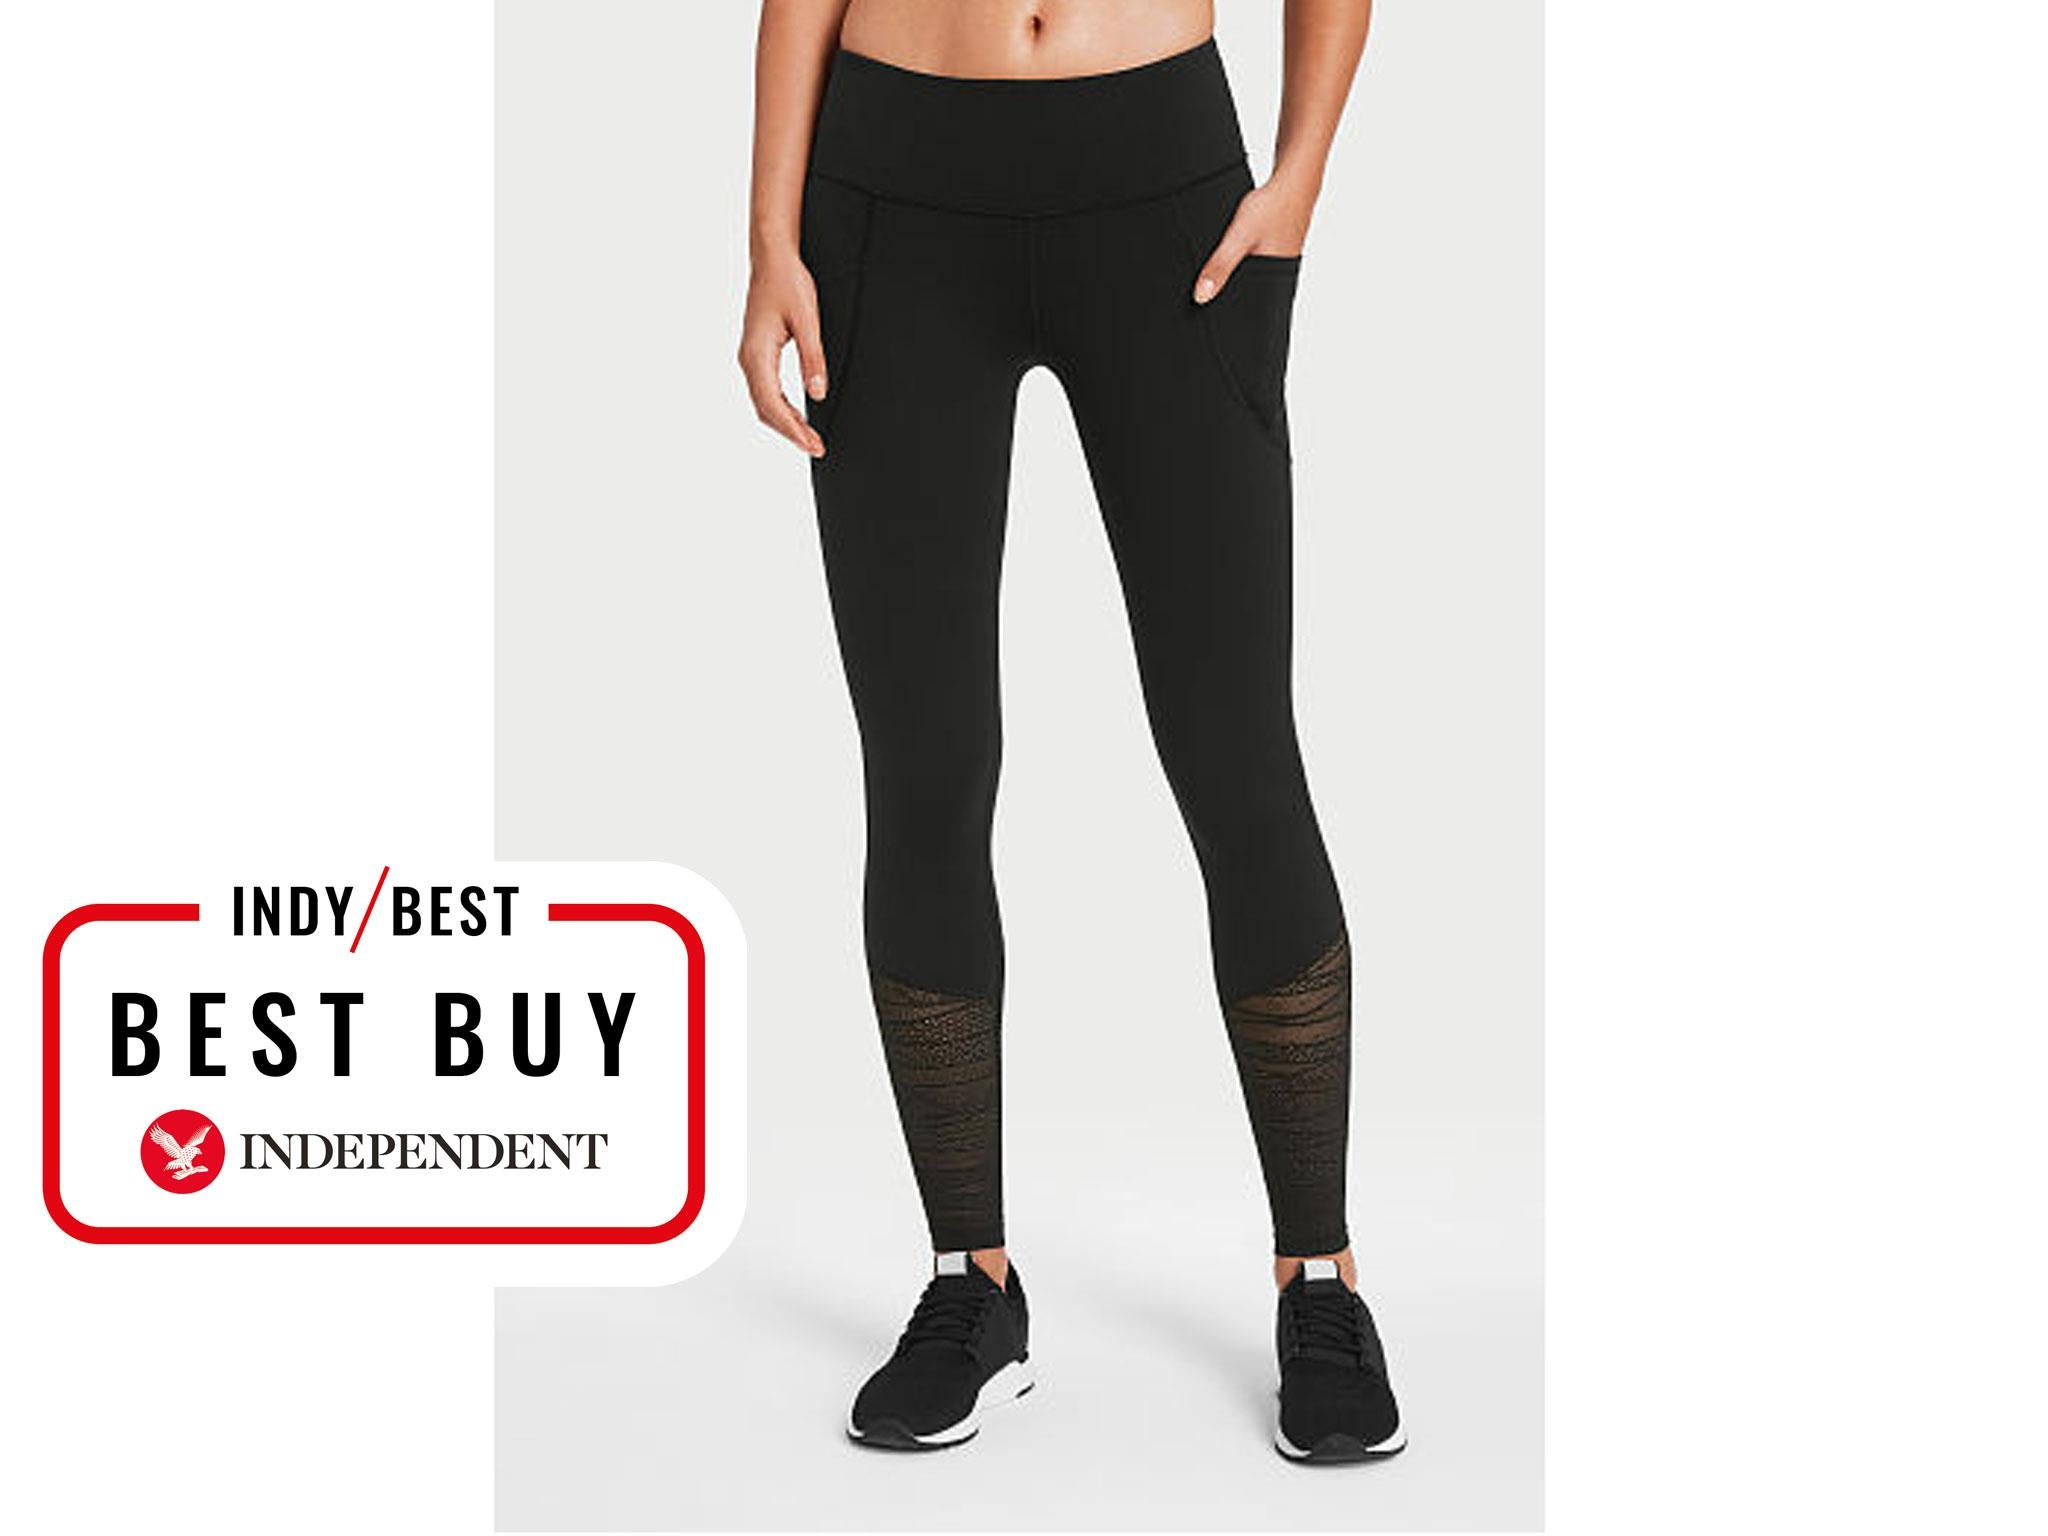 c1c286c7e1193 Victoria's Secret Knockout Leggings: £68.43, Victoria's Secret. These gym  leggings ...